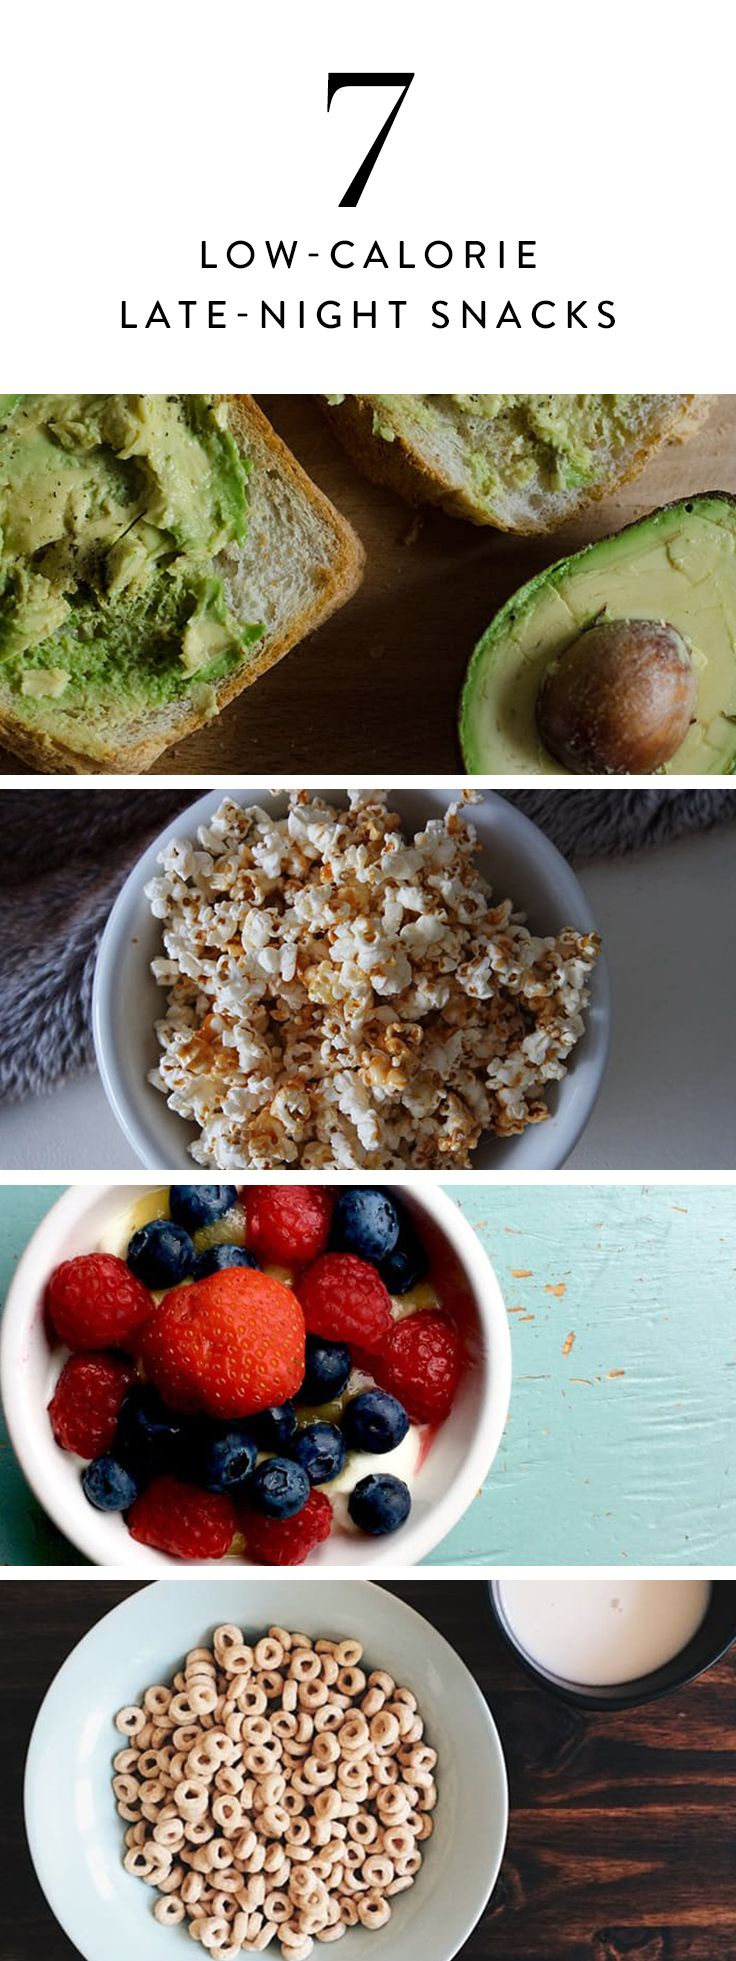 1037 best healthy recipes images on pinterest 7 low calorie late night snacks that wont ruin your waistline healthy habitseat healthyhealthy mealshealthy forumfinder Gallery